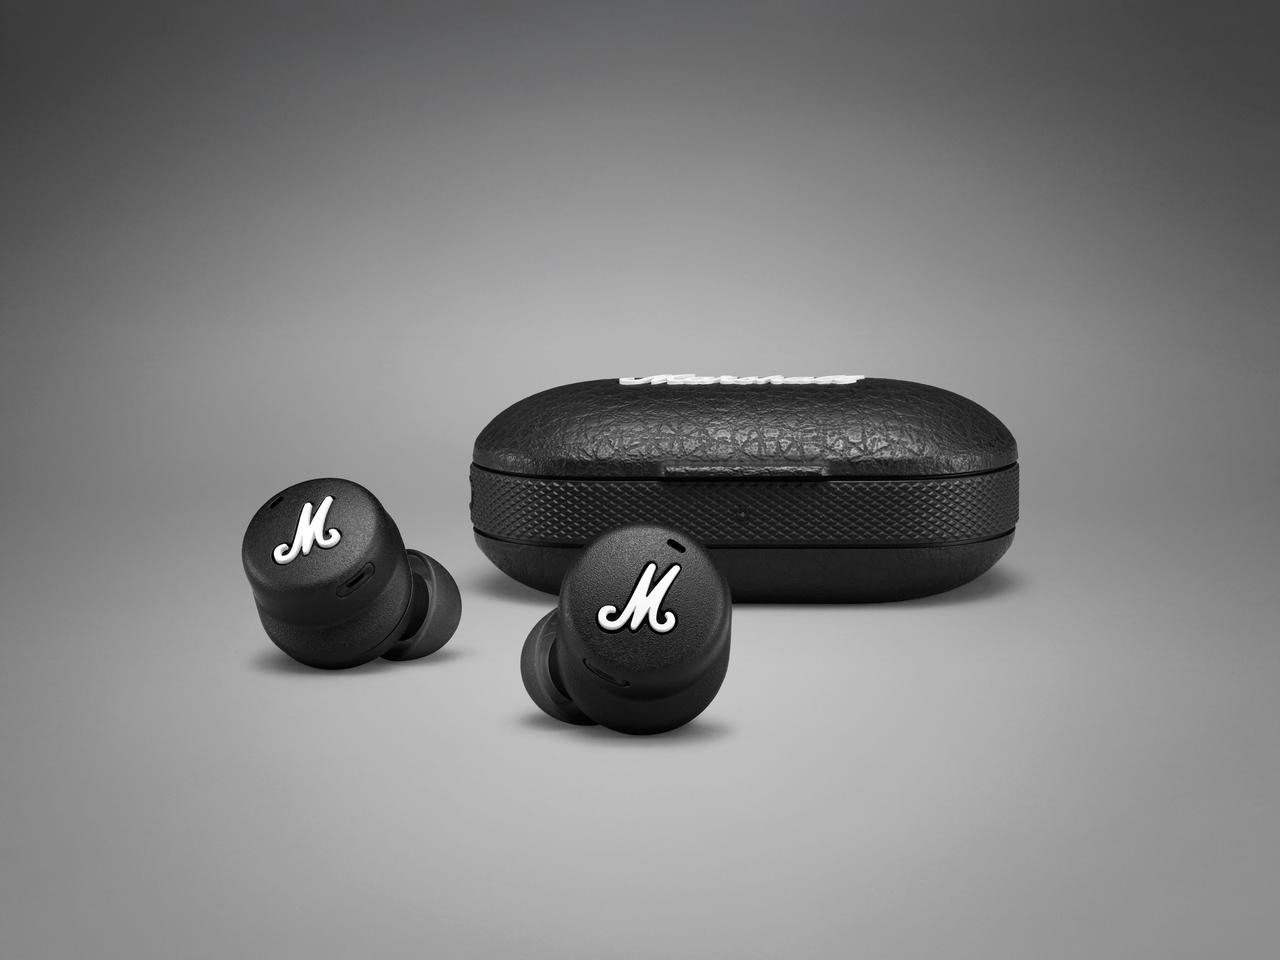 The Mode II earphones are good for up to five hours of playback, with the charging case offering four full top ups